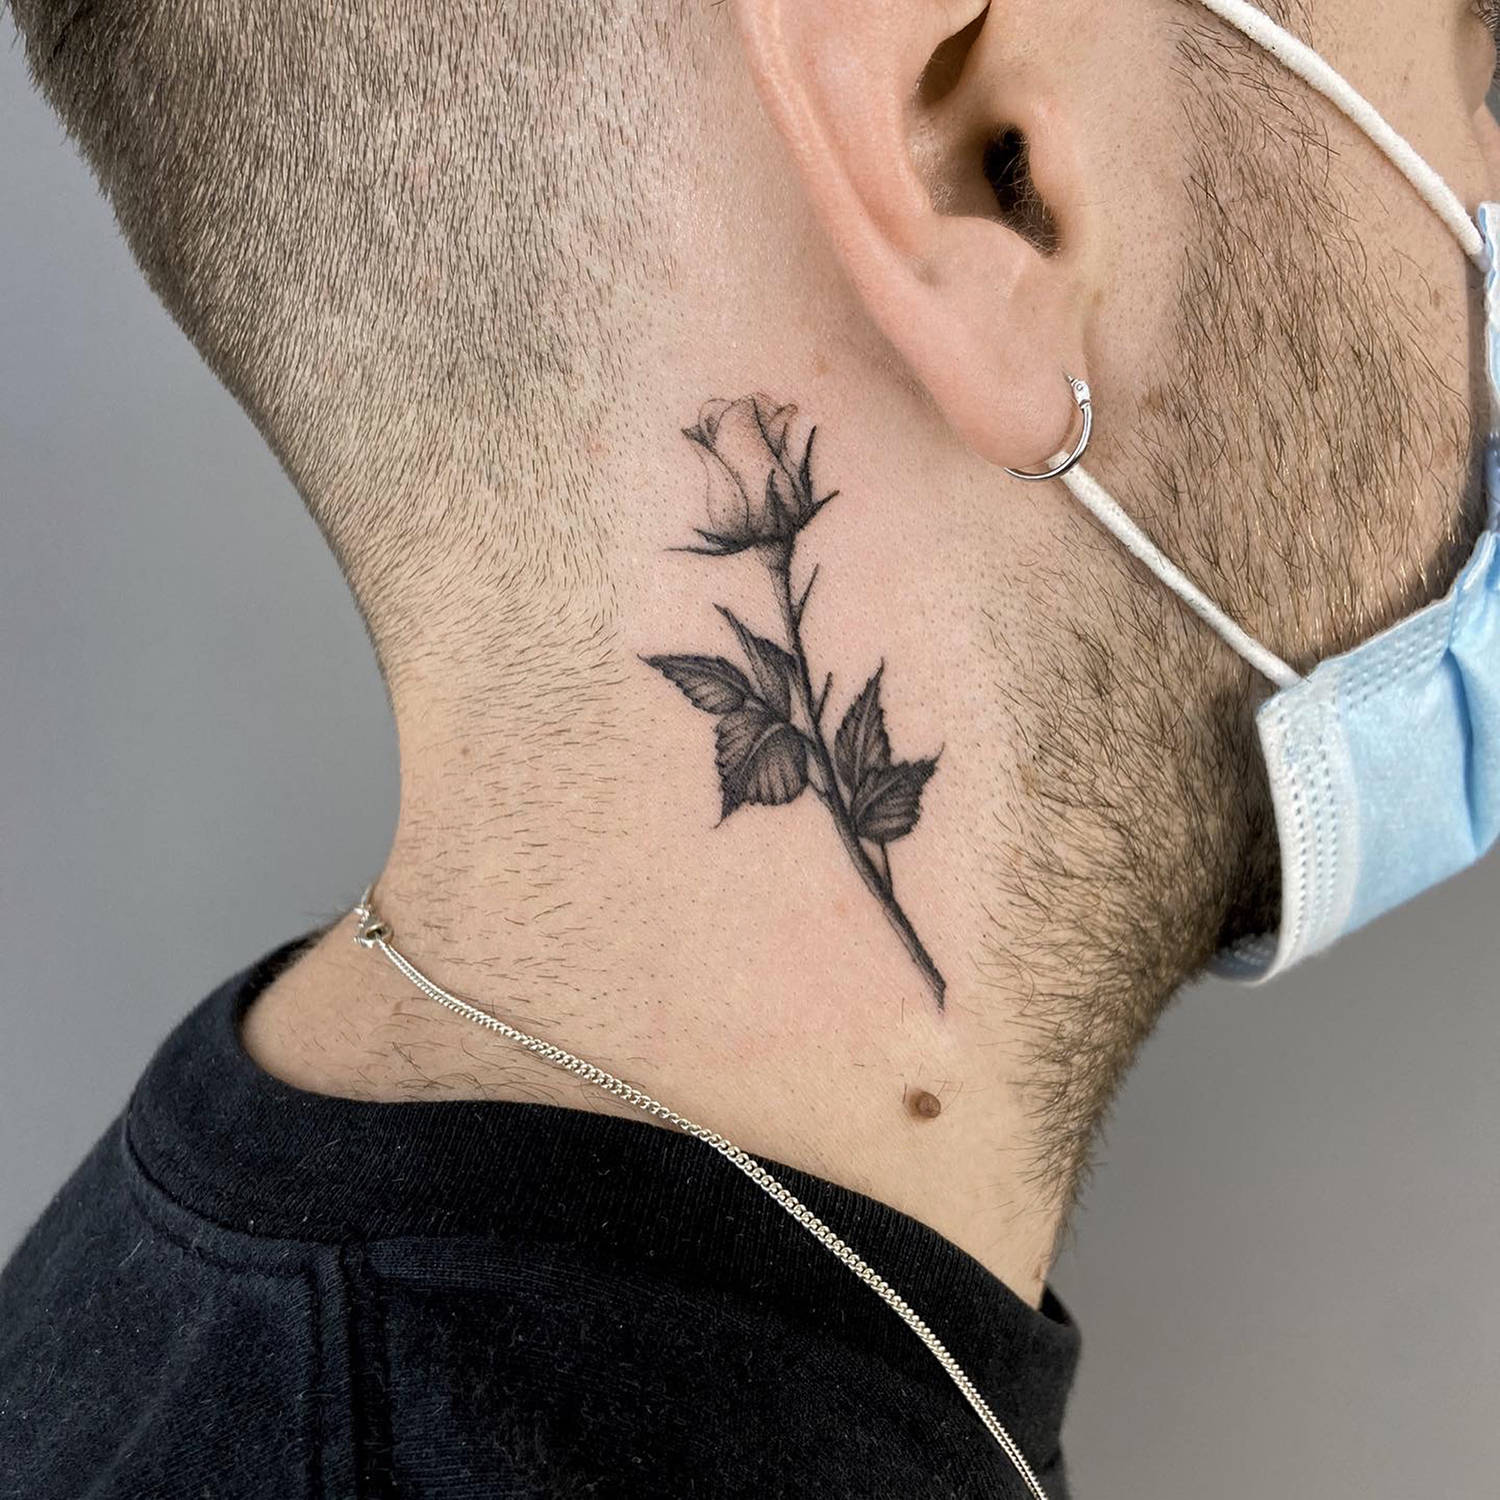 fine-line rose tattoo on neck, black ink